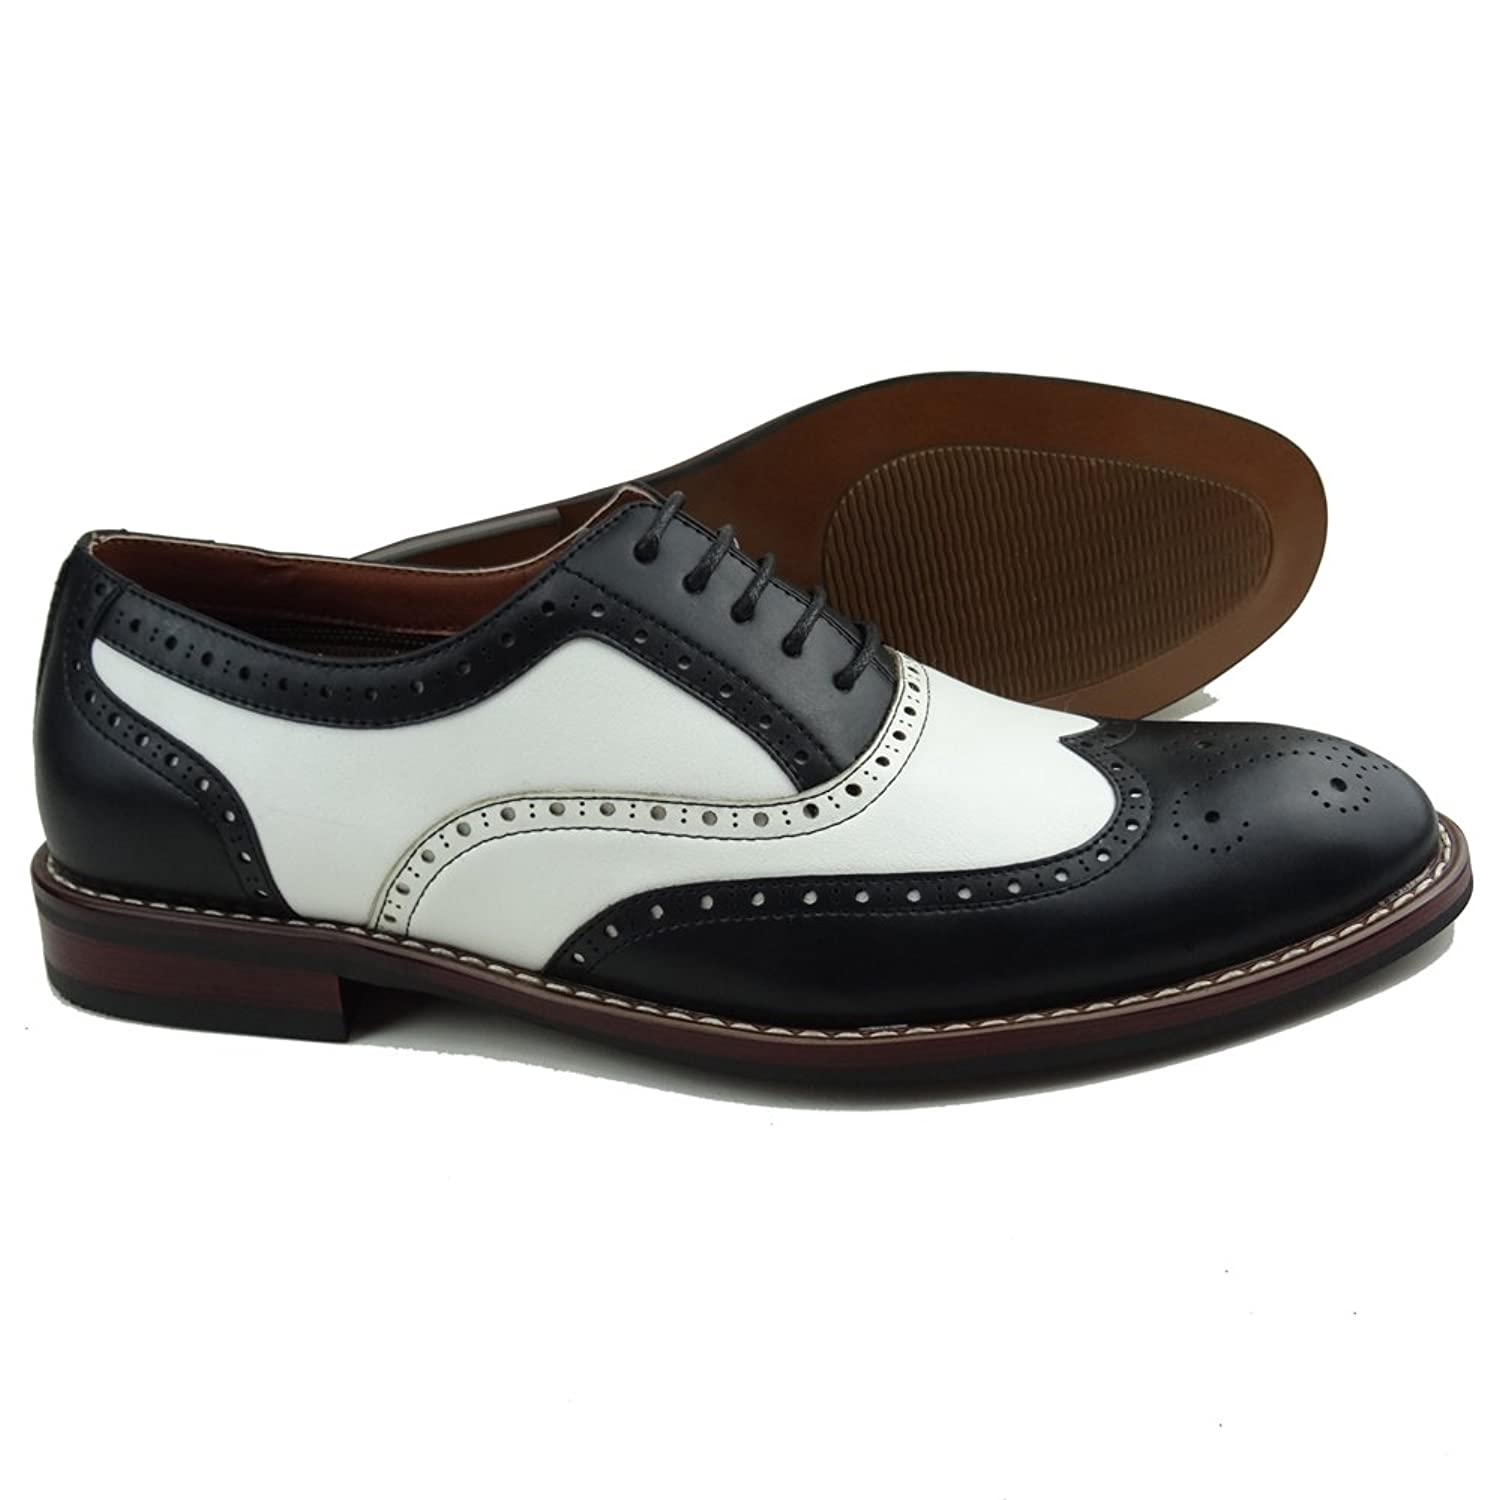 1960s Inspired Fashion: Recreate the Look  Mens Black White Lace Up Wing Tip Perforated Oxford Dress Shoes $34.99 AT vintagedancer.com